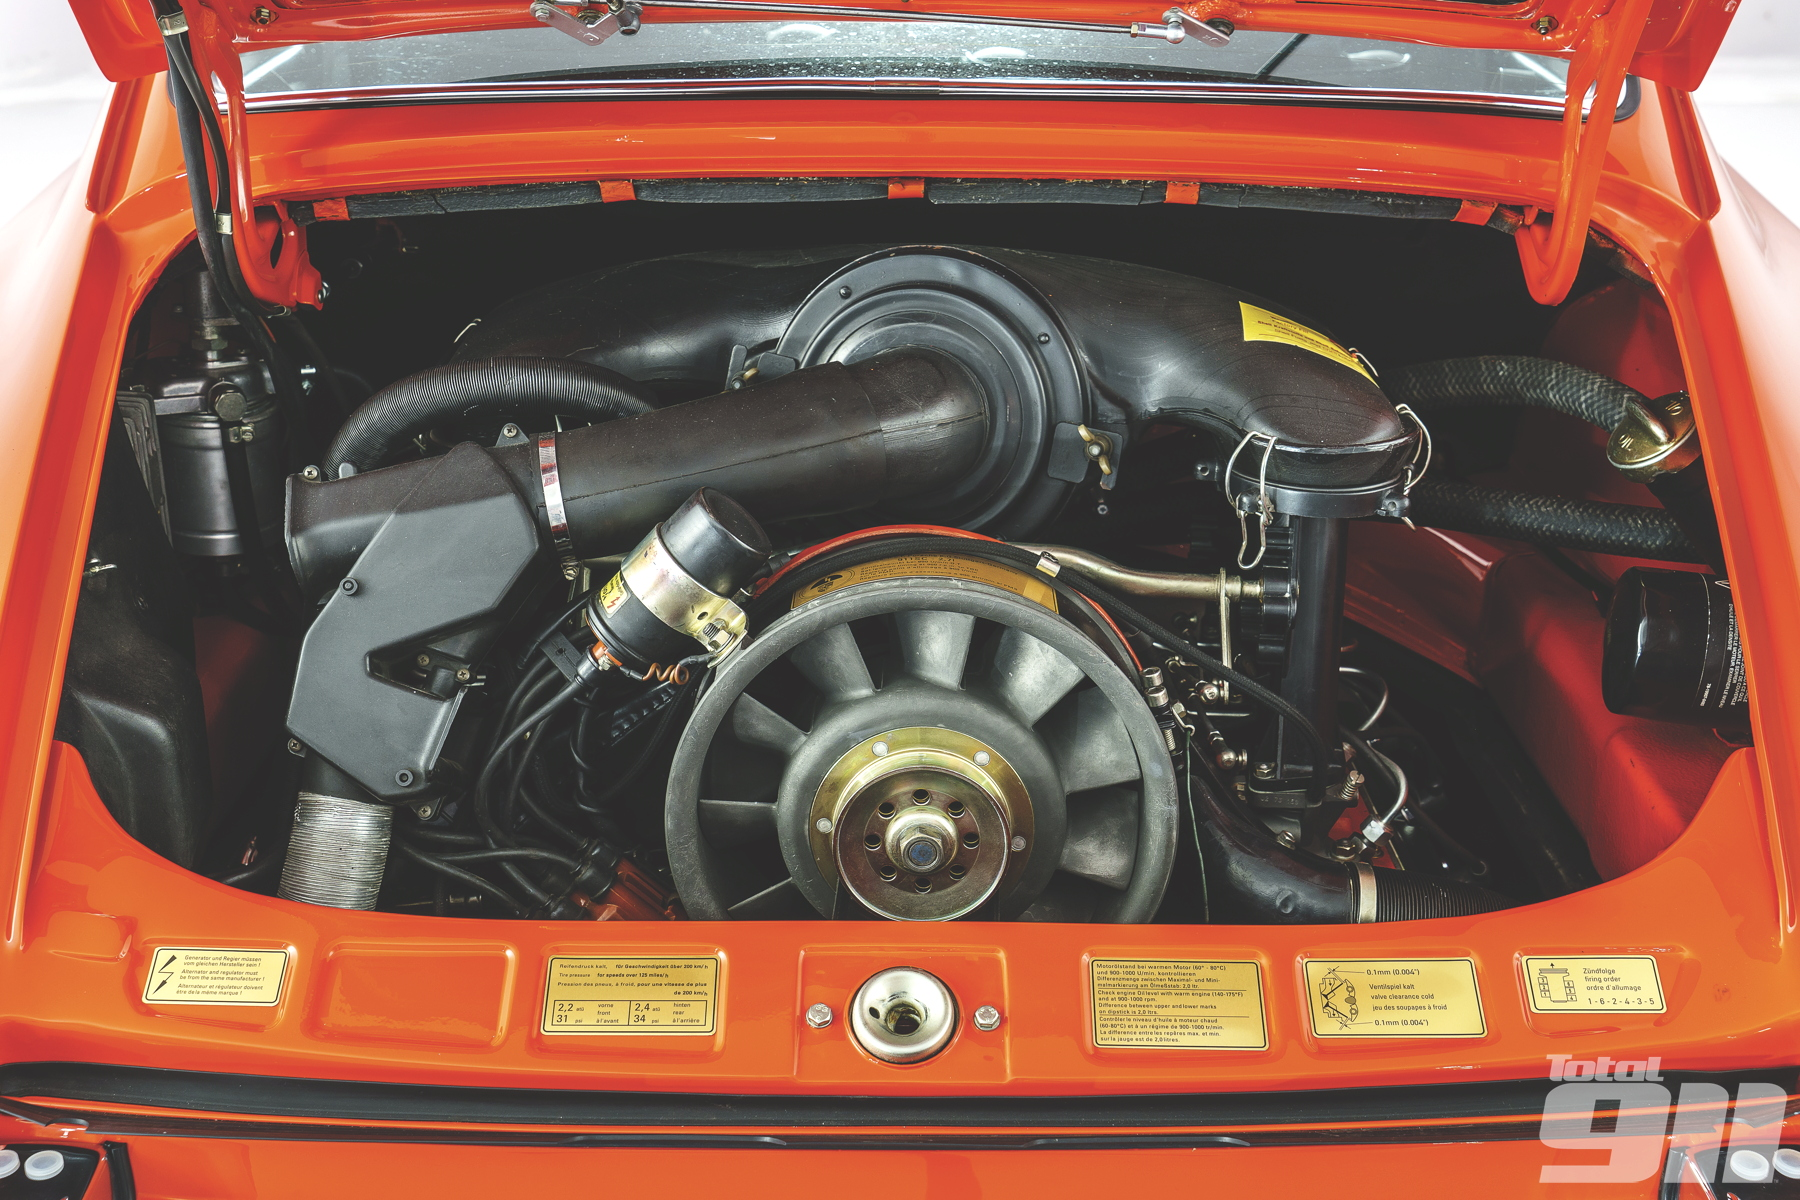 Porsche 911 Carrera RS engine